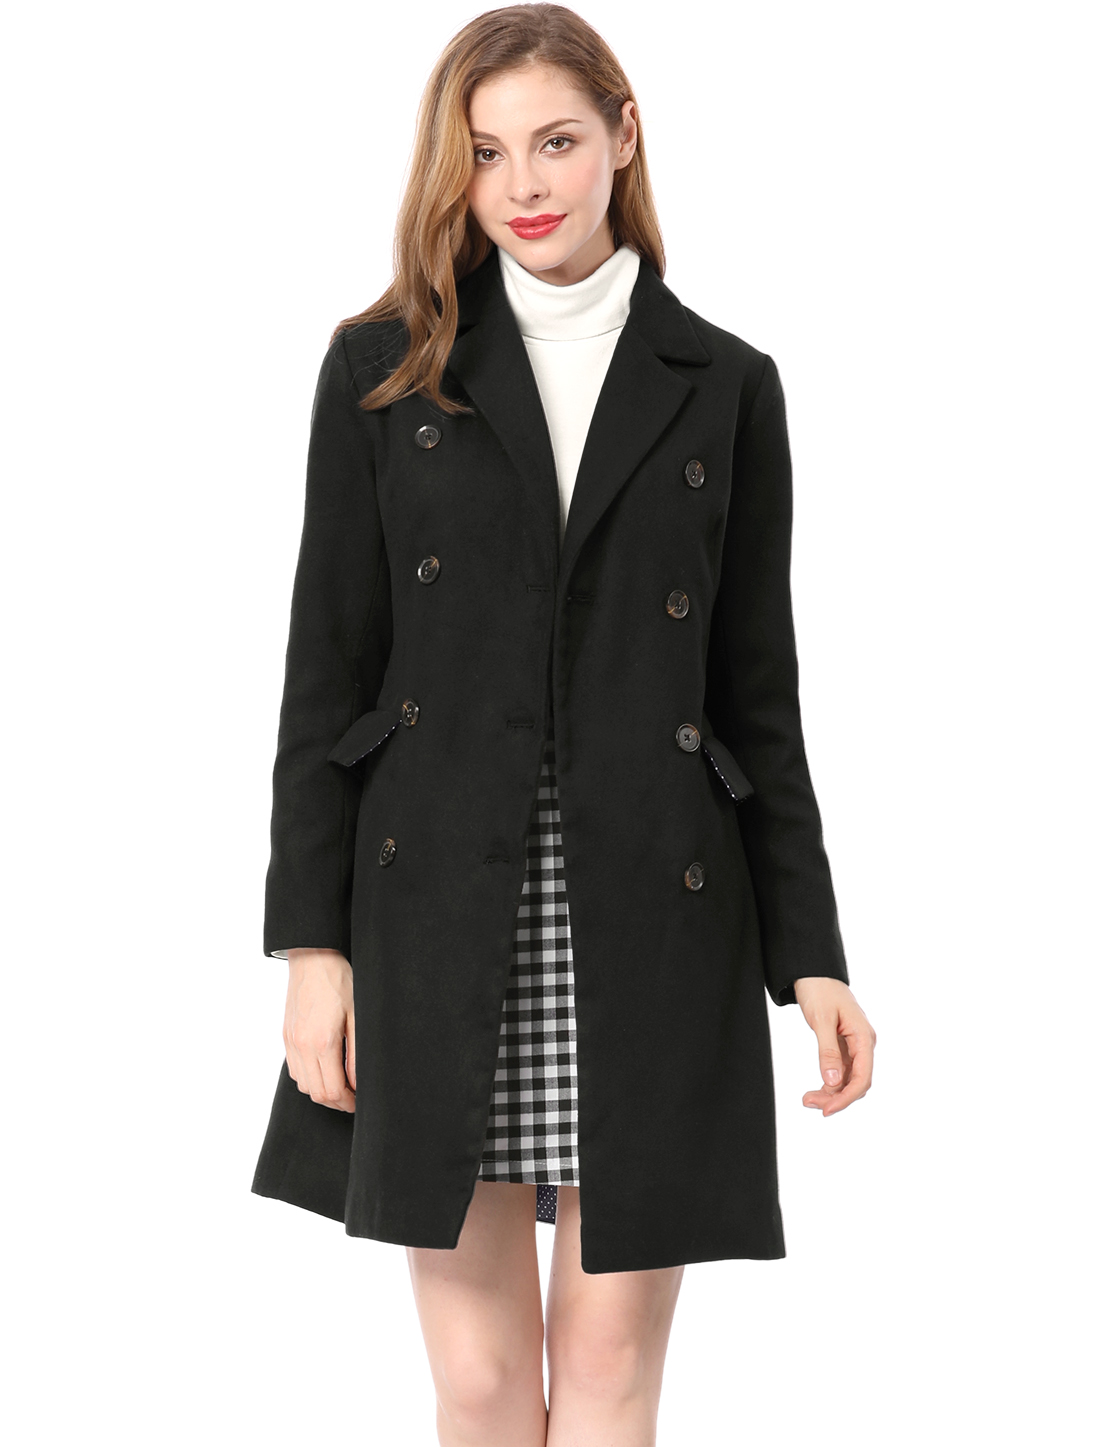 Women Notched Lapel Double Breasted Trench Coat Black S (US 6)